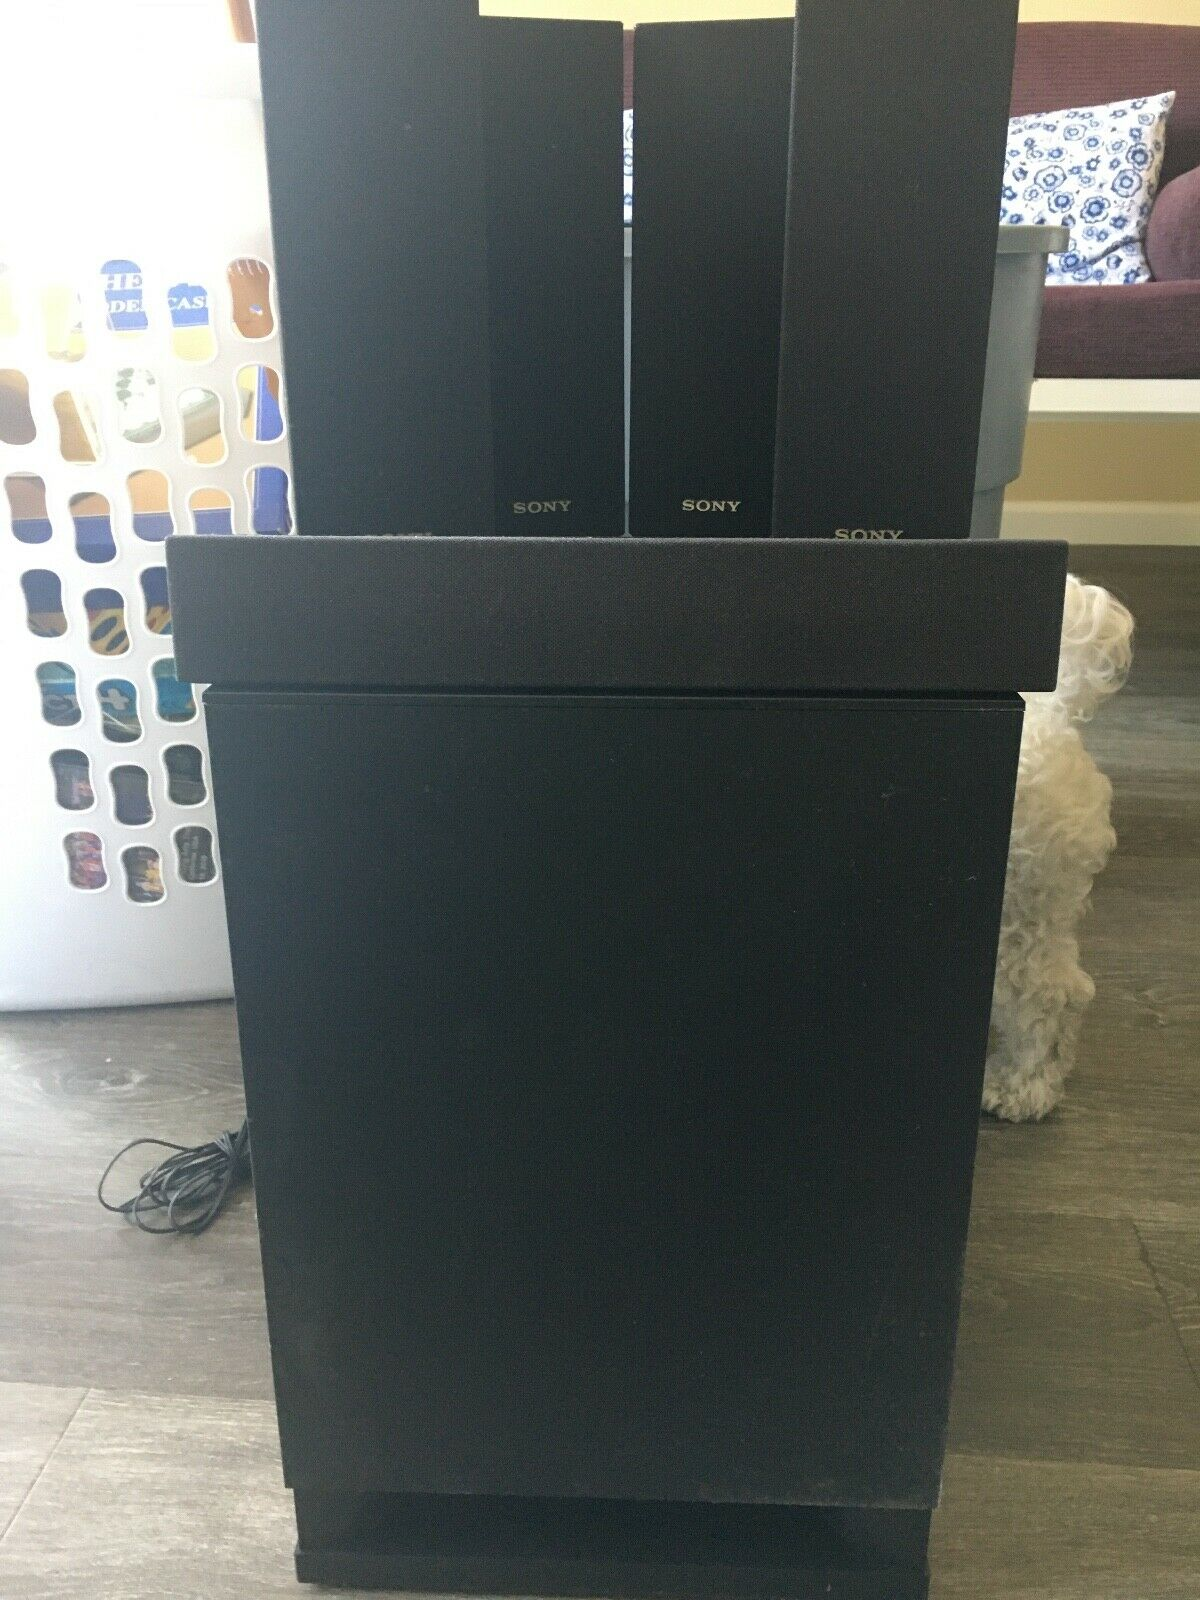 Sony BDV-T79 Surround Sound 5.1-Channel Home Theater System + 5 Speakers. Buy it now for 150.00